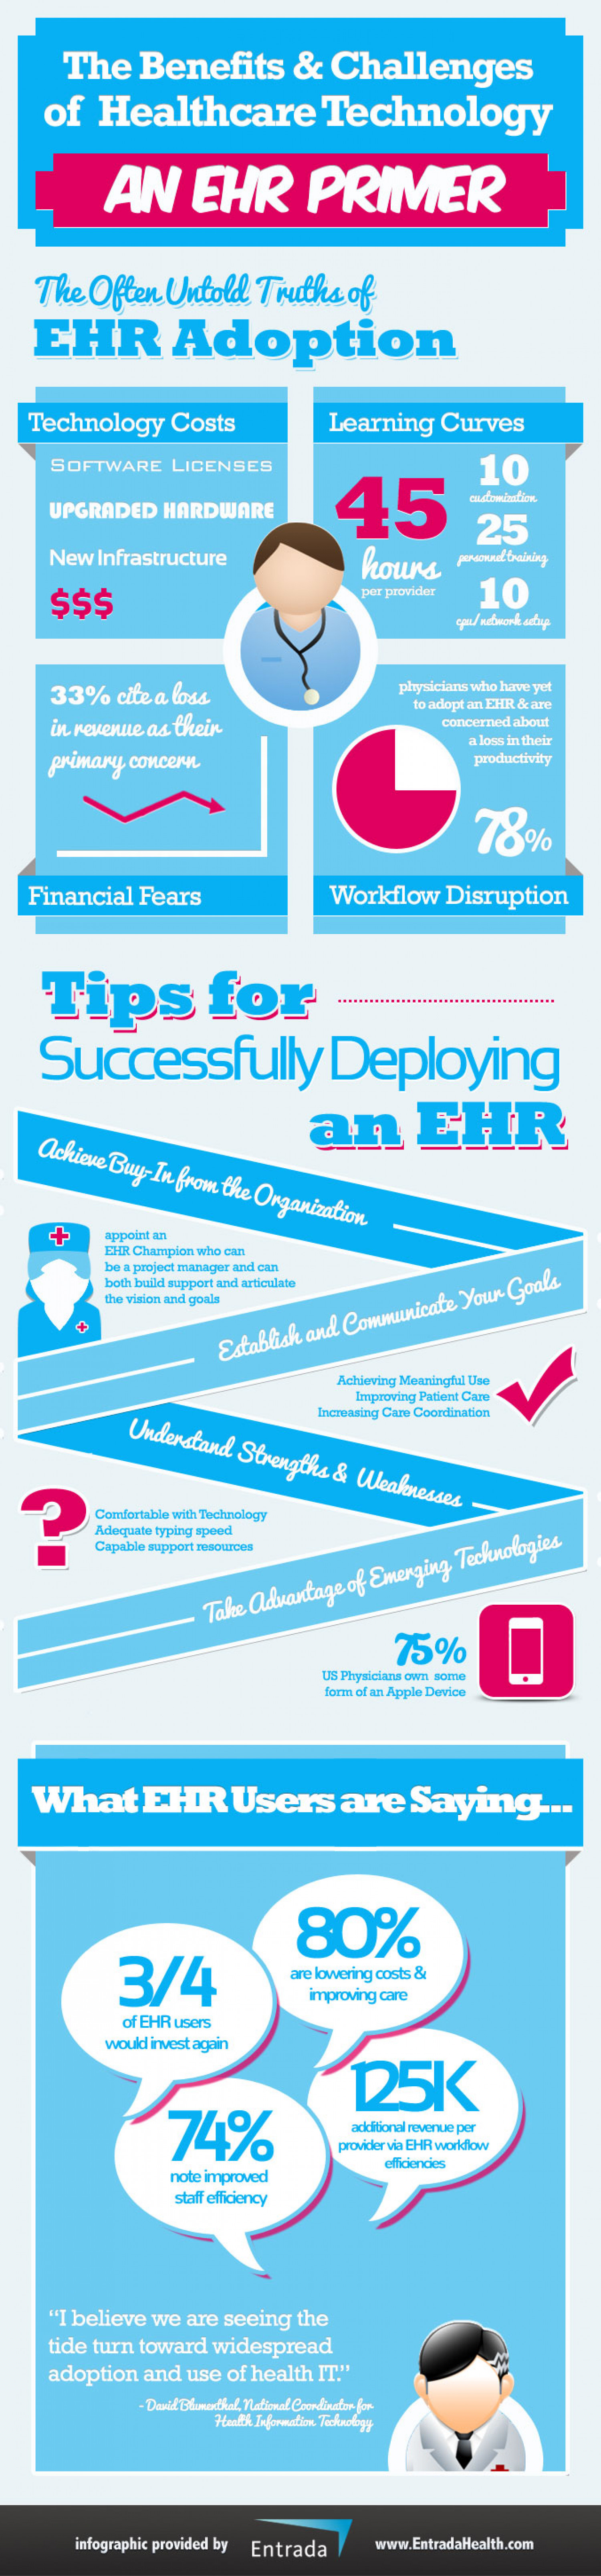 The Benefits and Challenges of Healthcare Technology: An EHR Primer Infographic